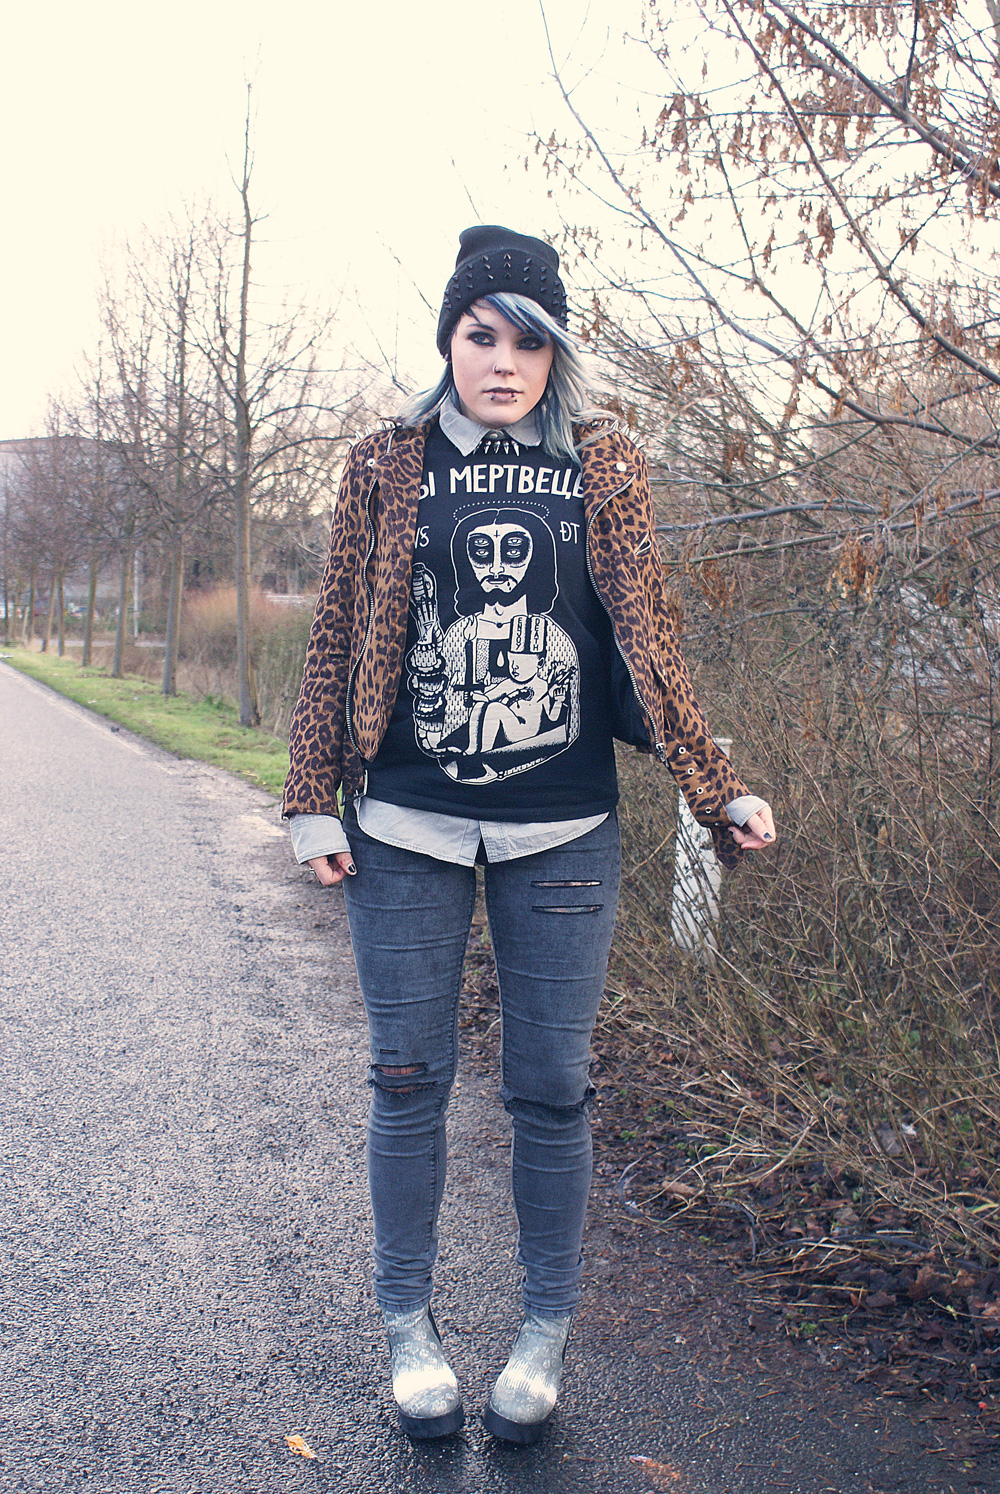 unif leo moto spikes biker leopard h&m necklace kette wir sind die toten wsdt snake of christ hemd shirt destroyed used jeans asos plateau platform kroko crocodile print animalprint punk style streetstyle altfashion fashion alternative